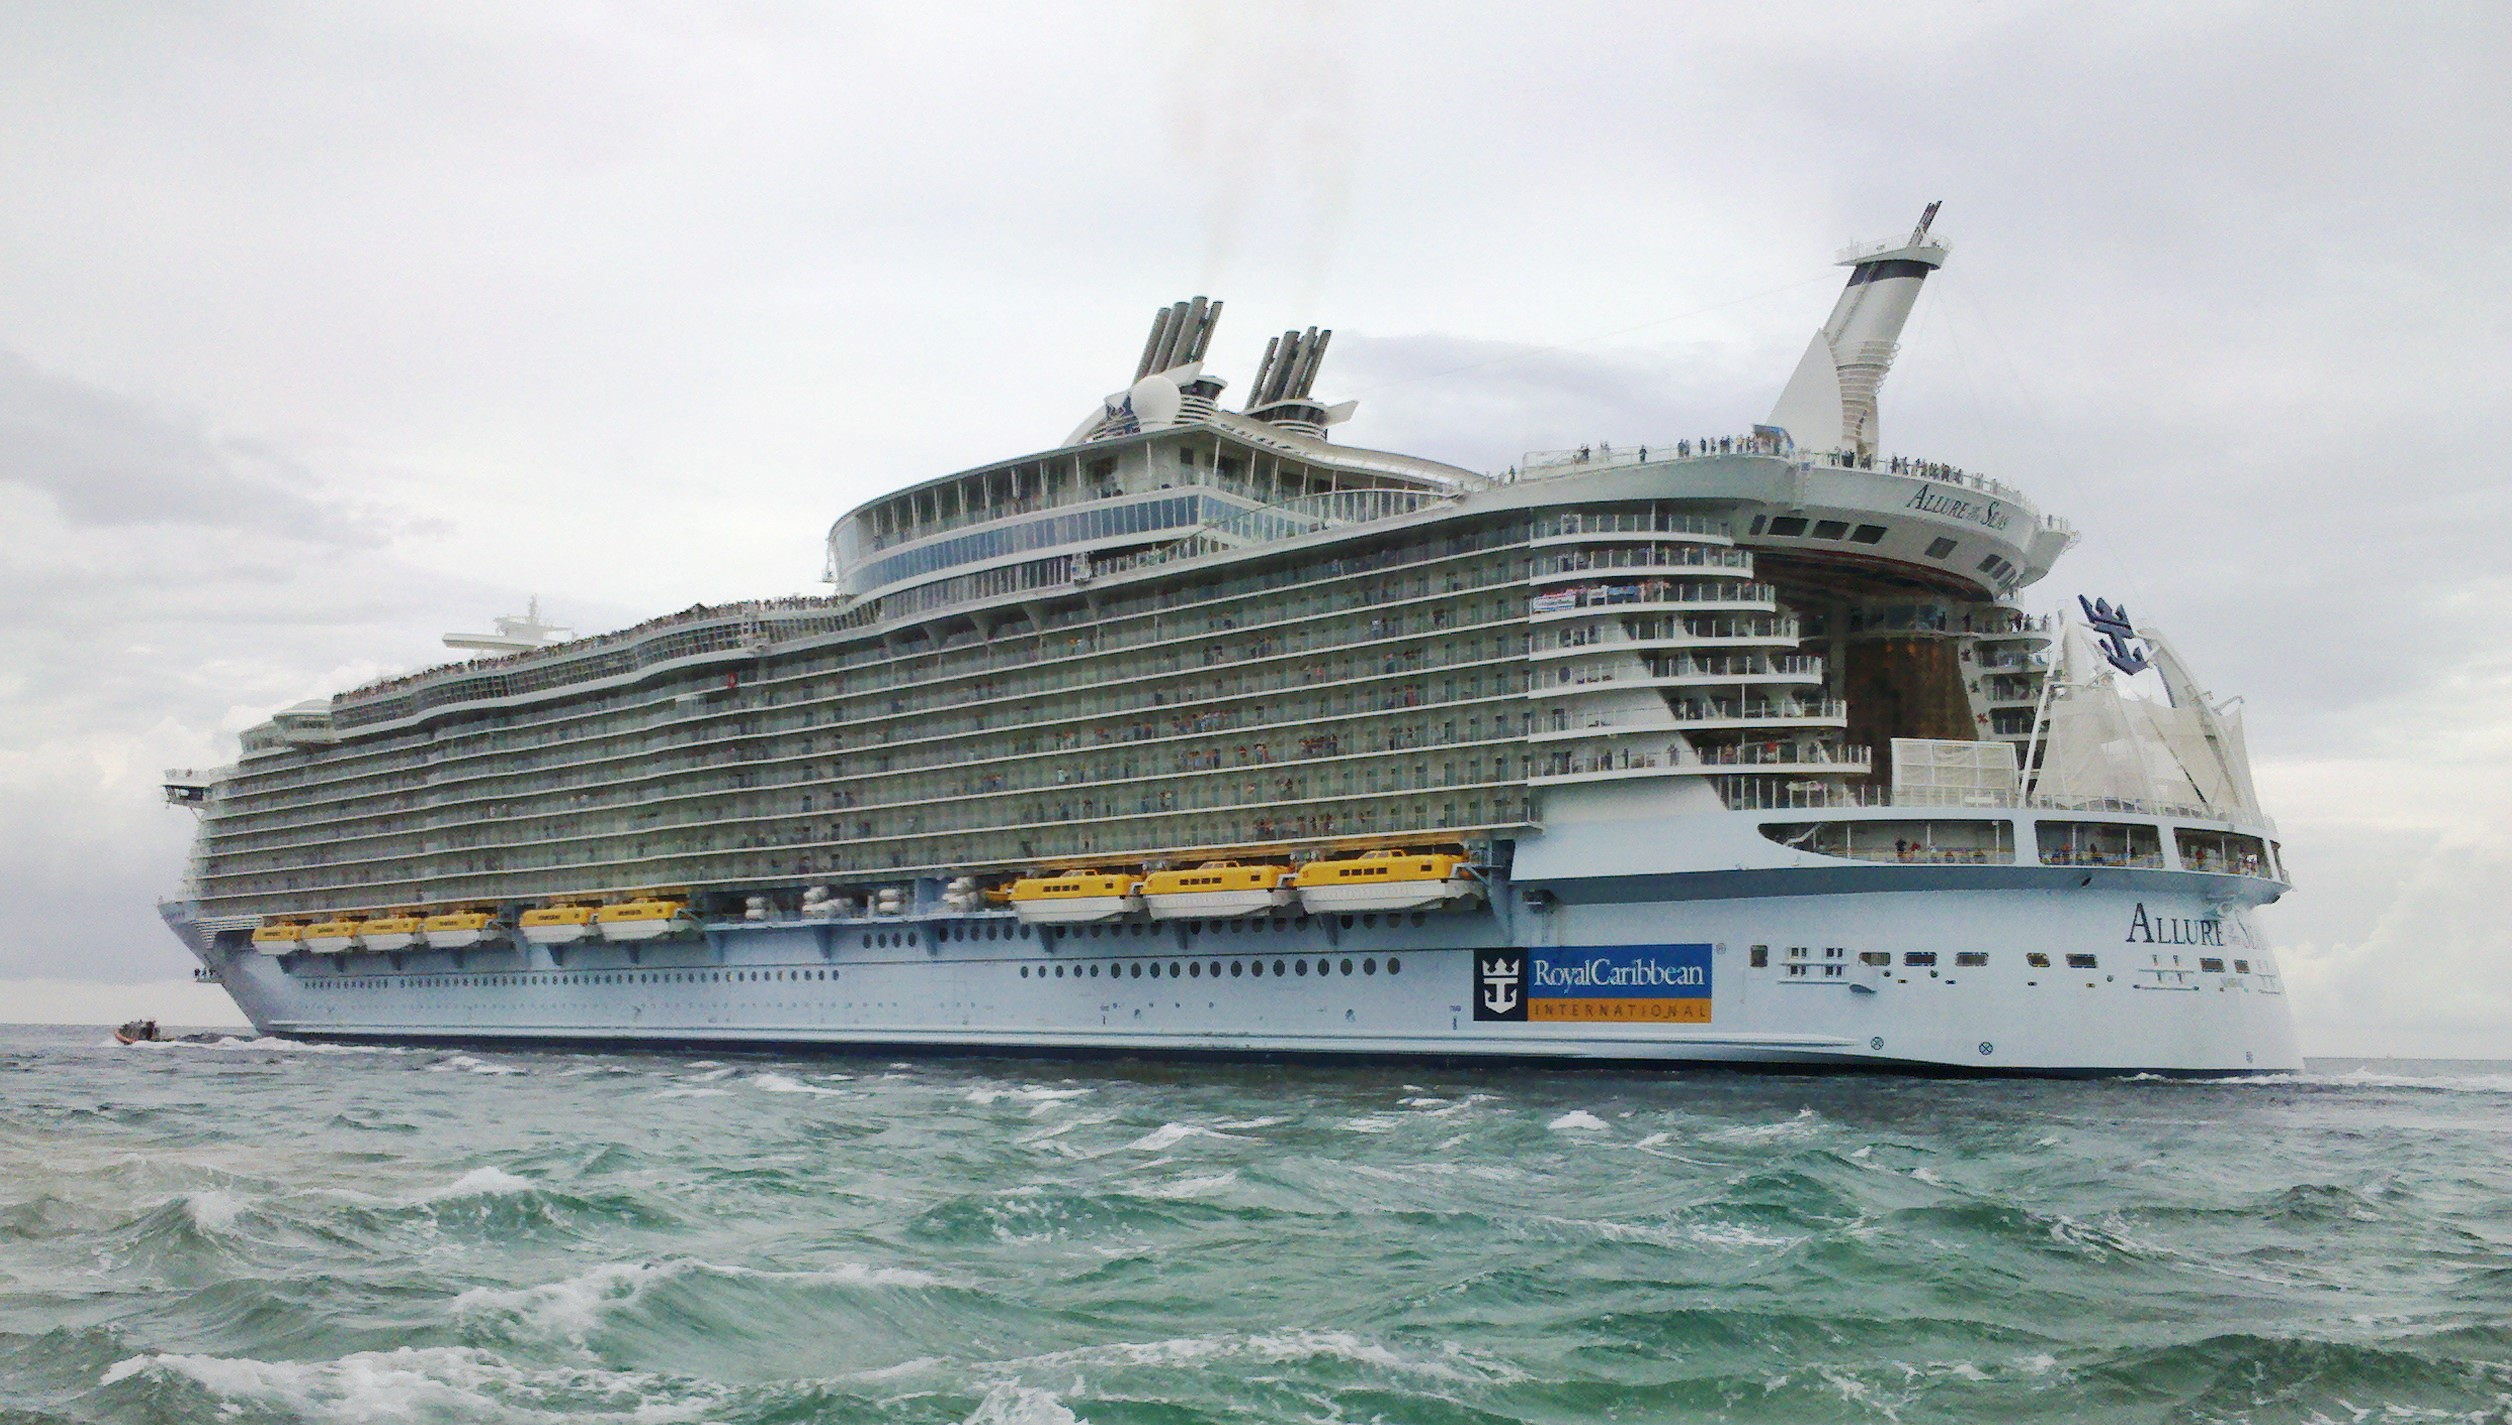 File:Allure of the Seas leaving Port Everglades (cropped